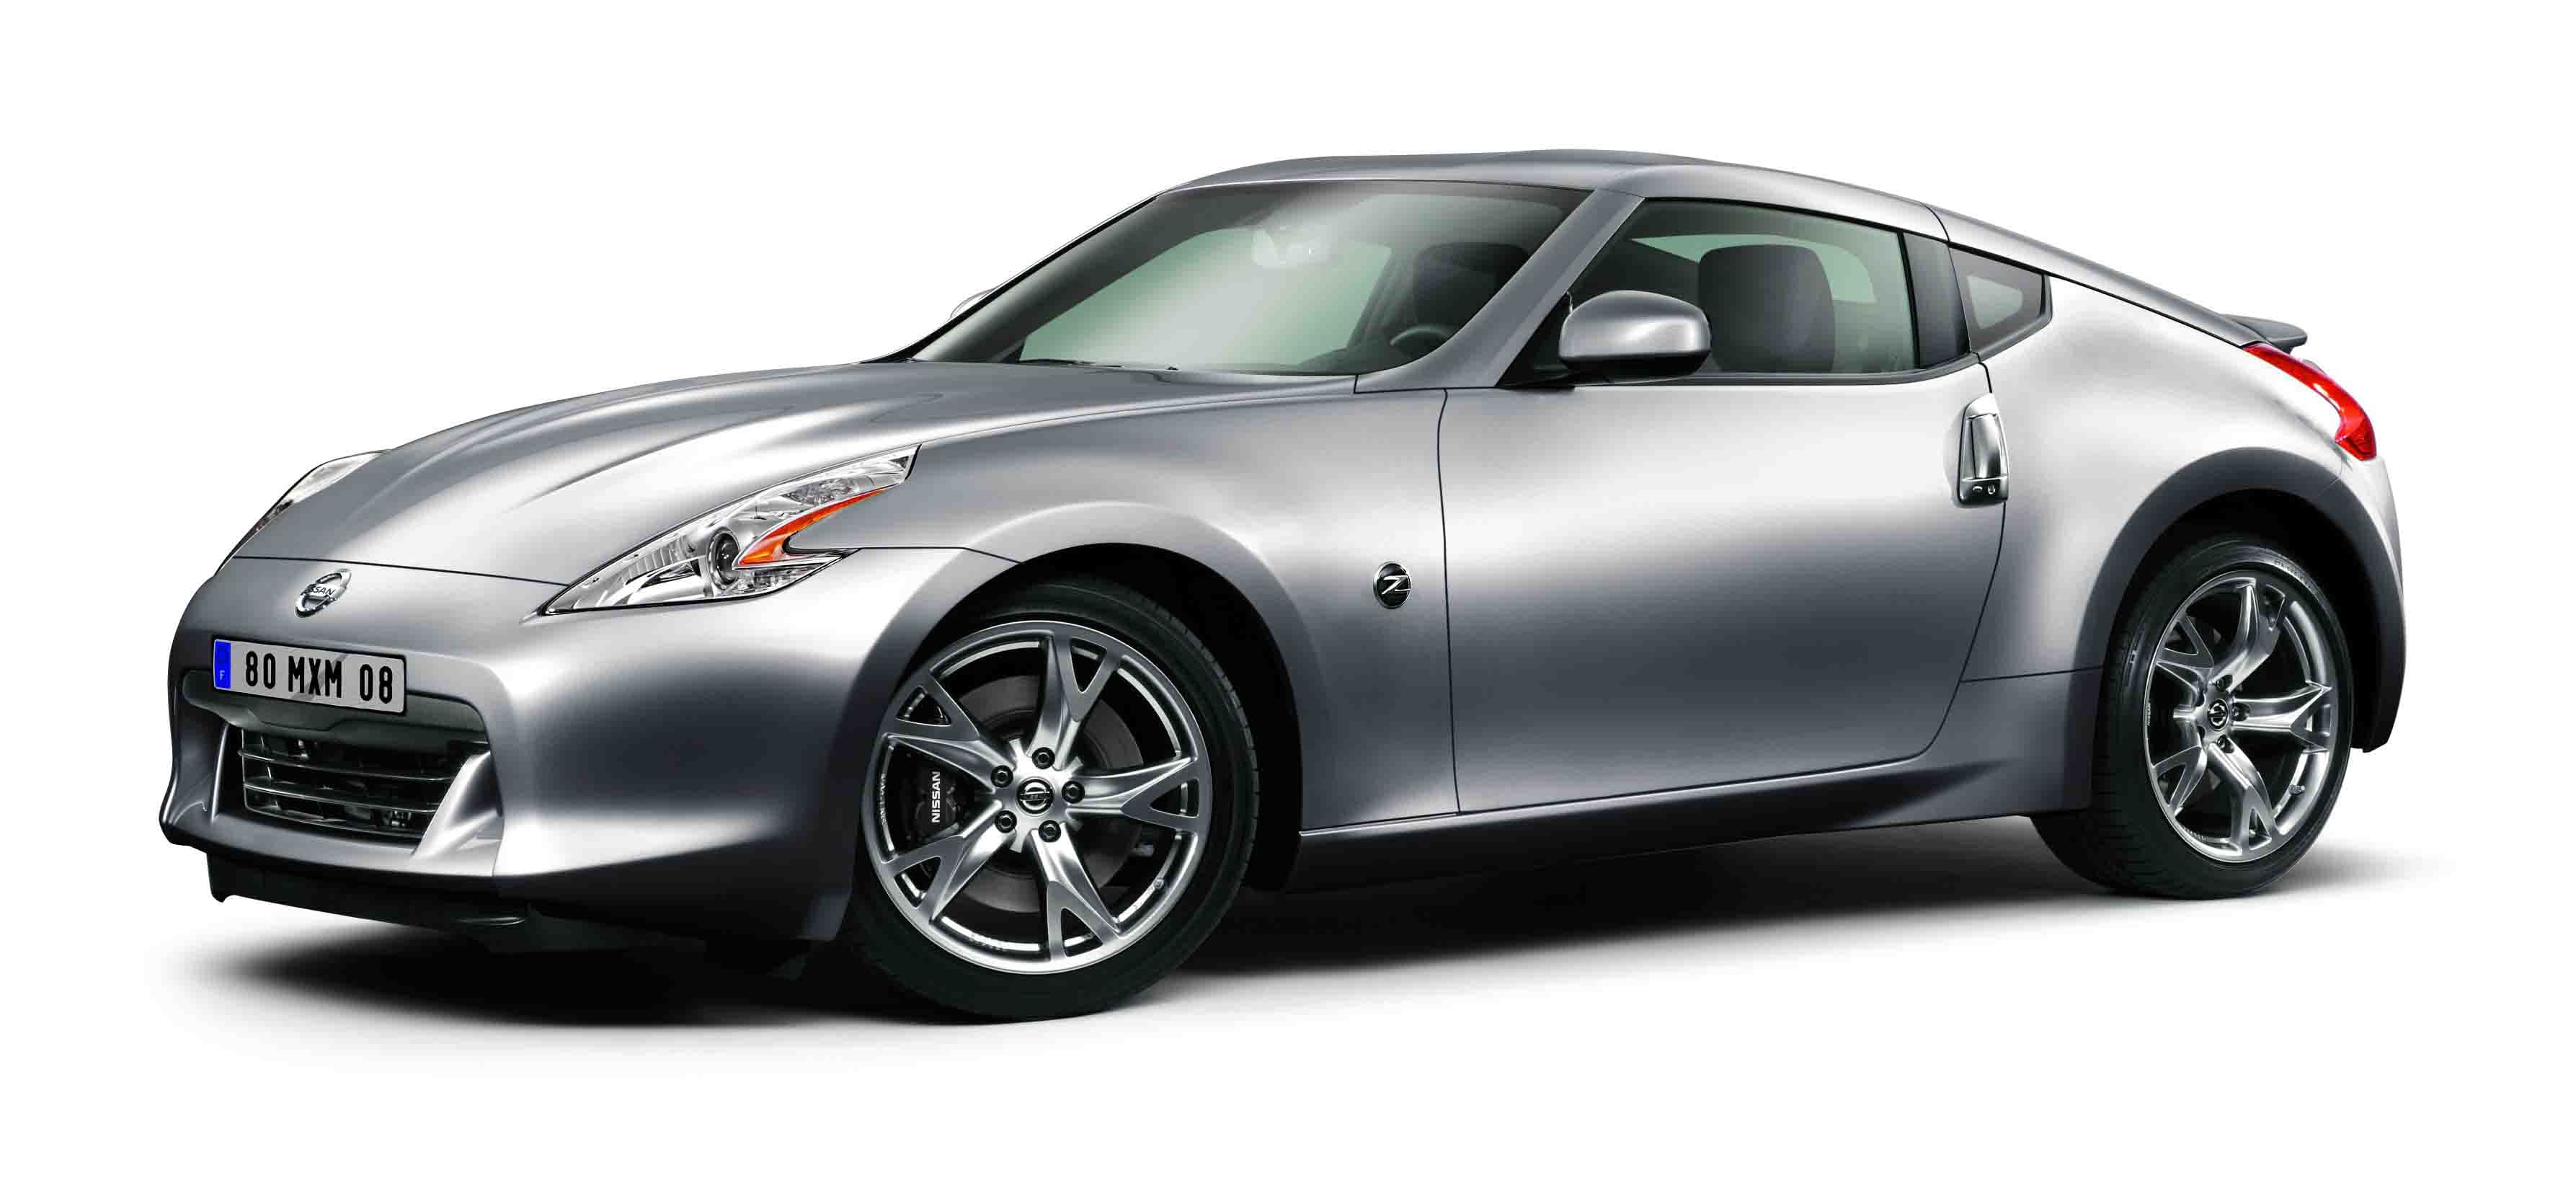 Nissan 370z India Price Review Images Nissan Cars